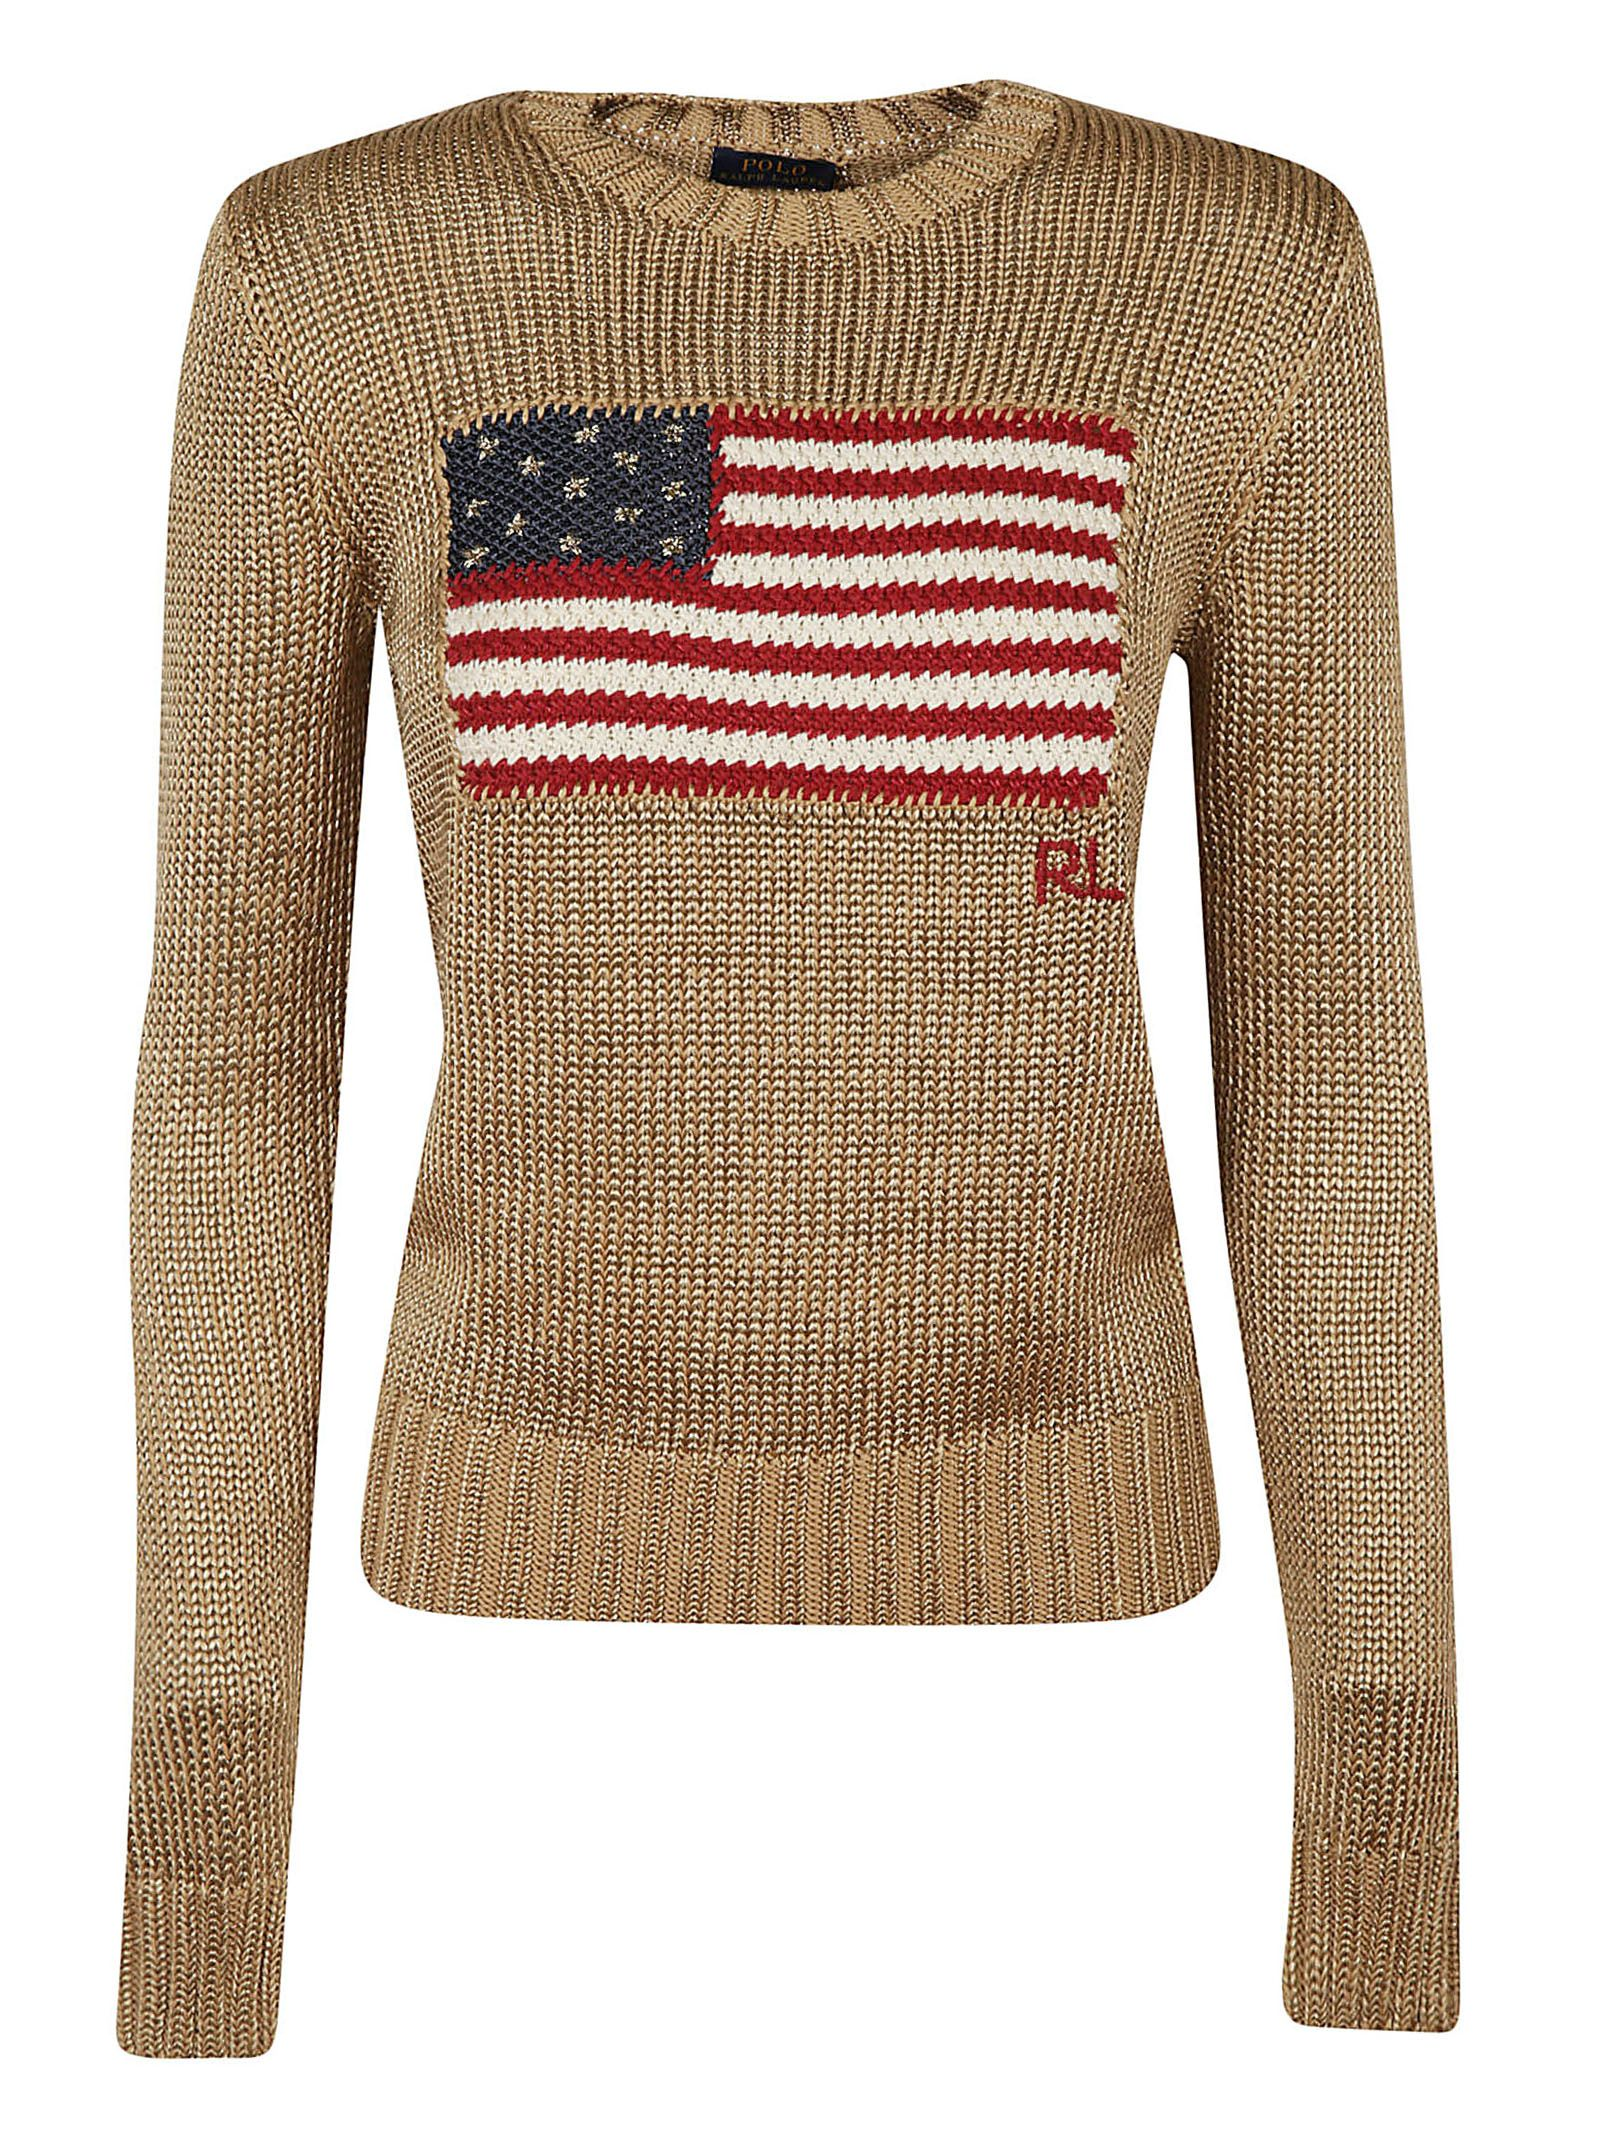 Metallic American Flag Knit Sweater in Gold